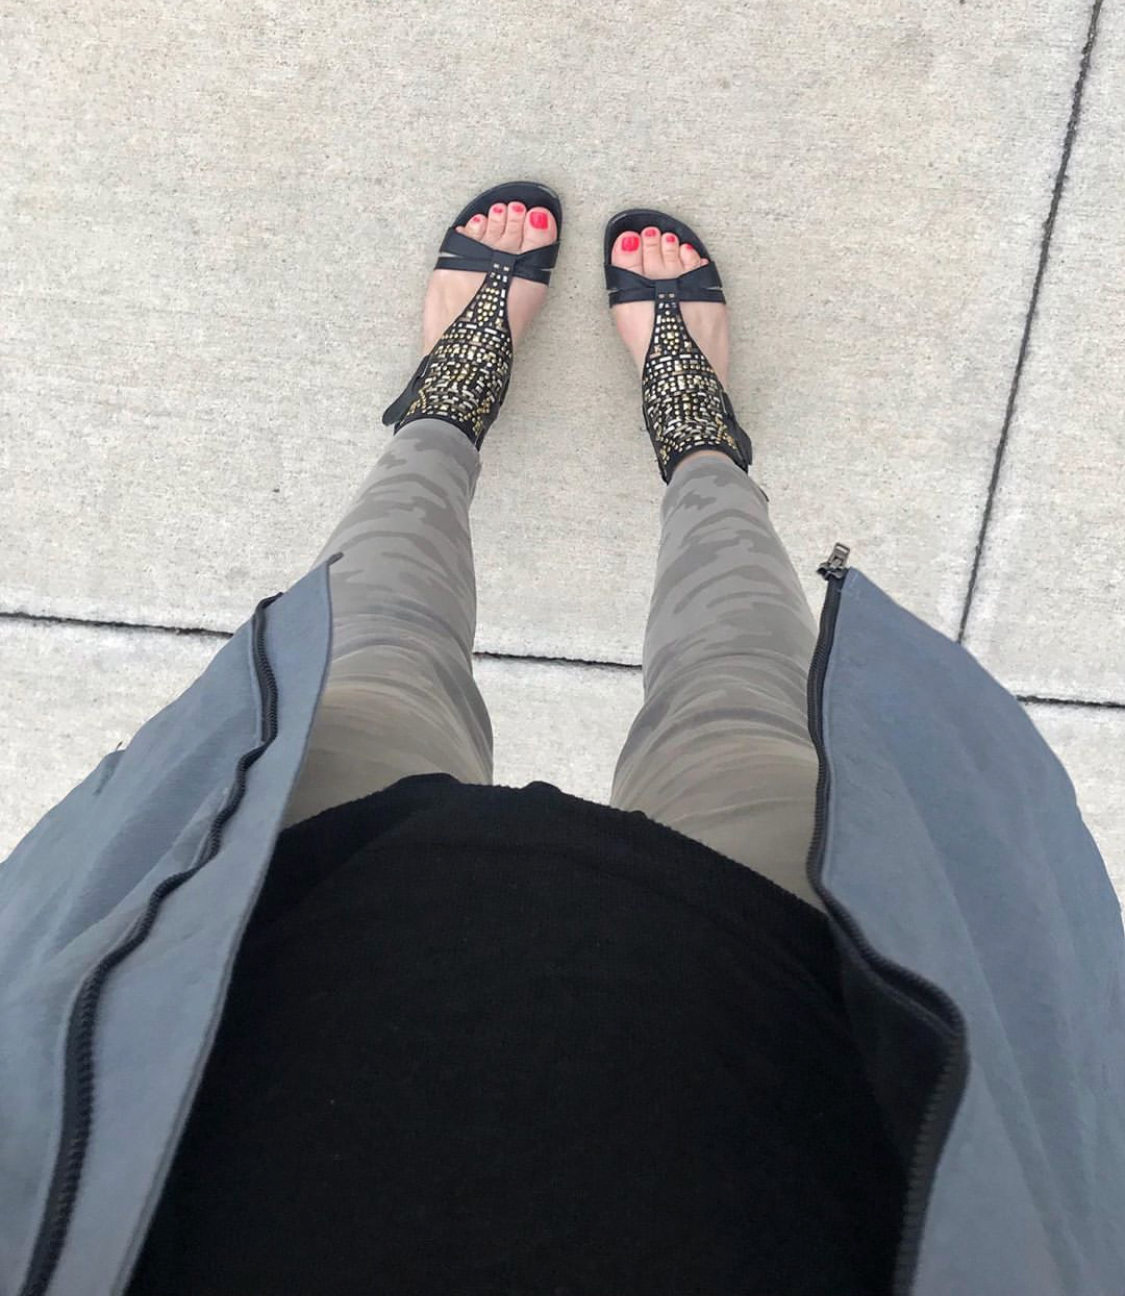 We heart our readers (& a style challenge, too). We're getting dressed for sustainability, wearing clothes at least 10 years' old. #EcofriendlyFashion